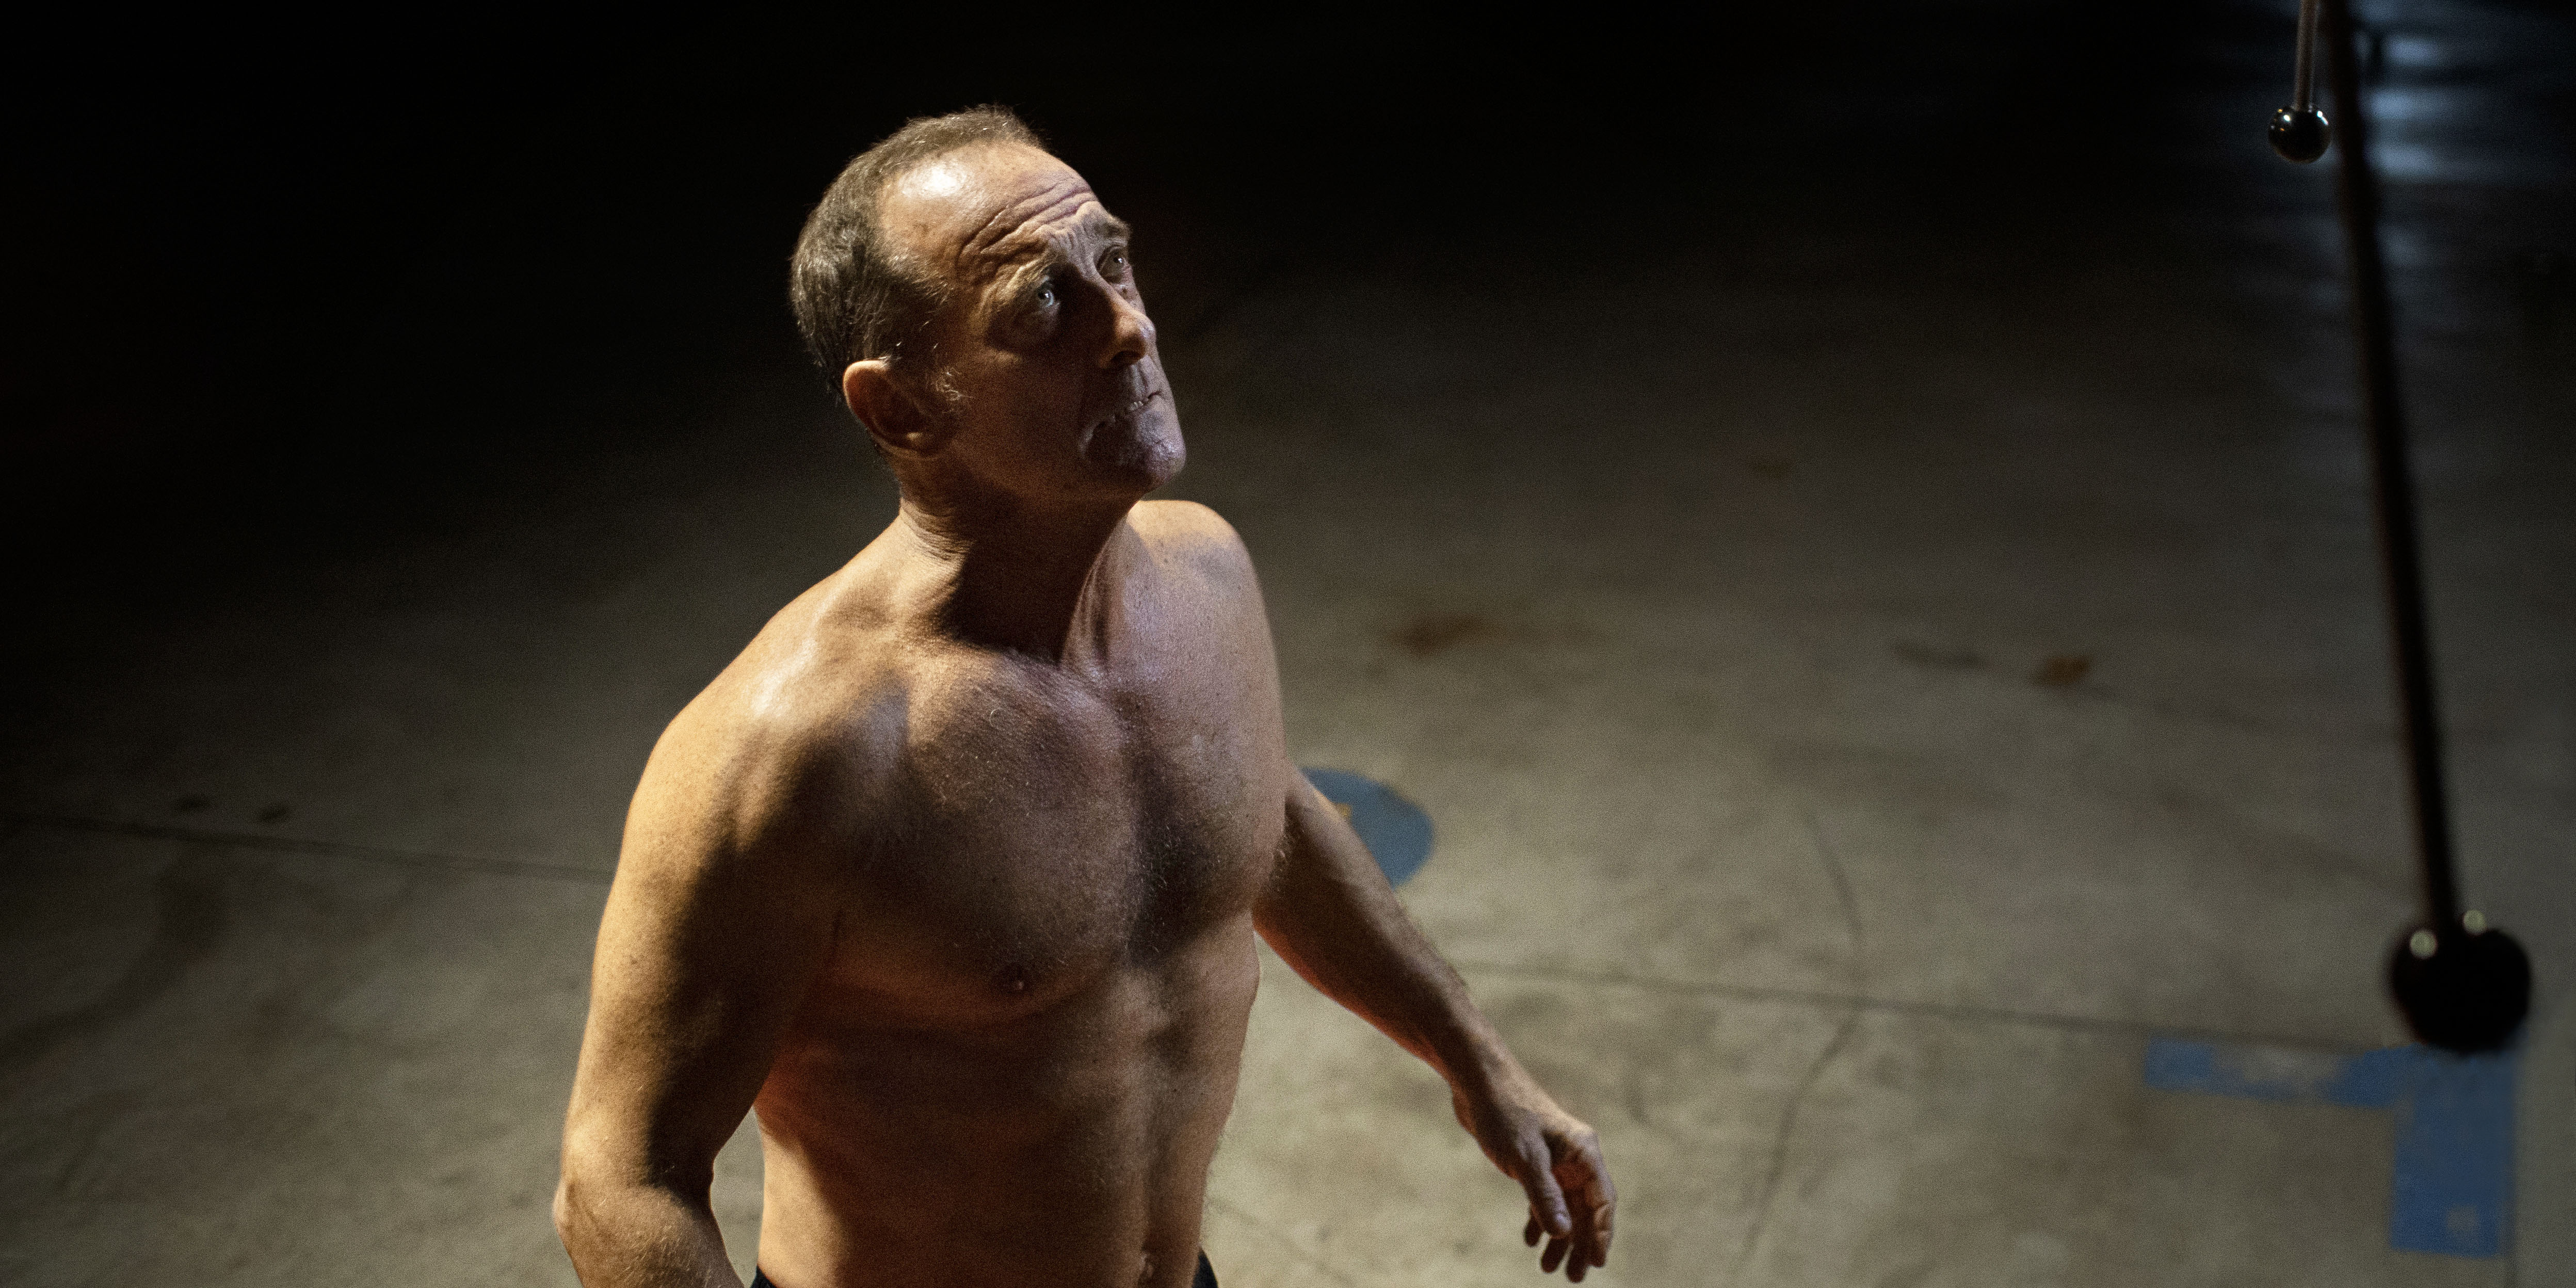 A bare chested man standing in an empty space looks up